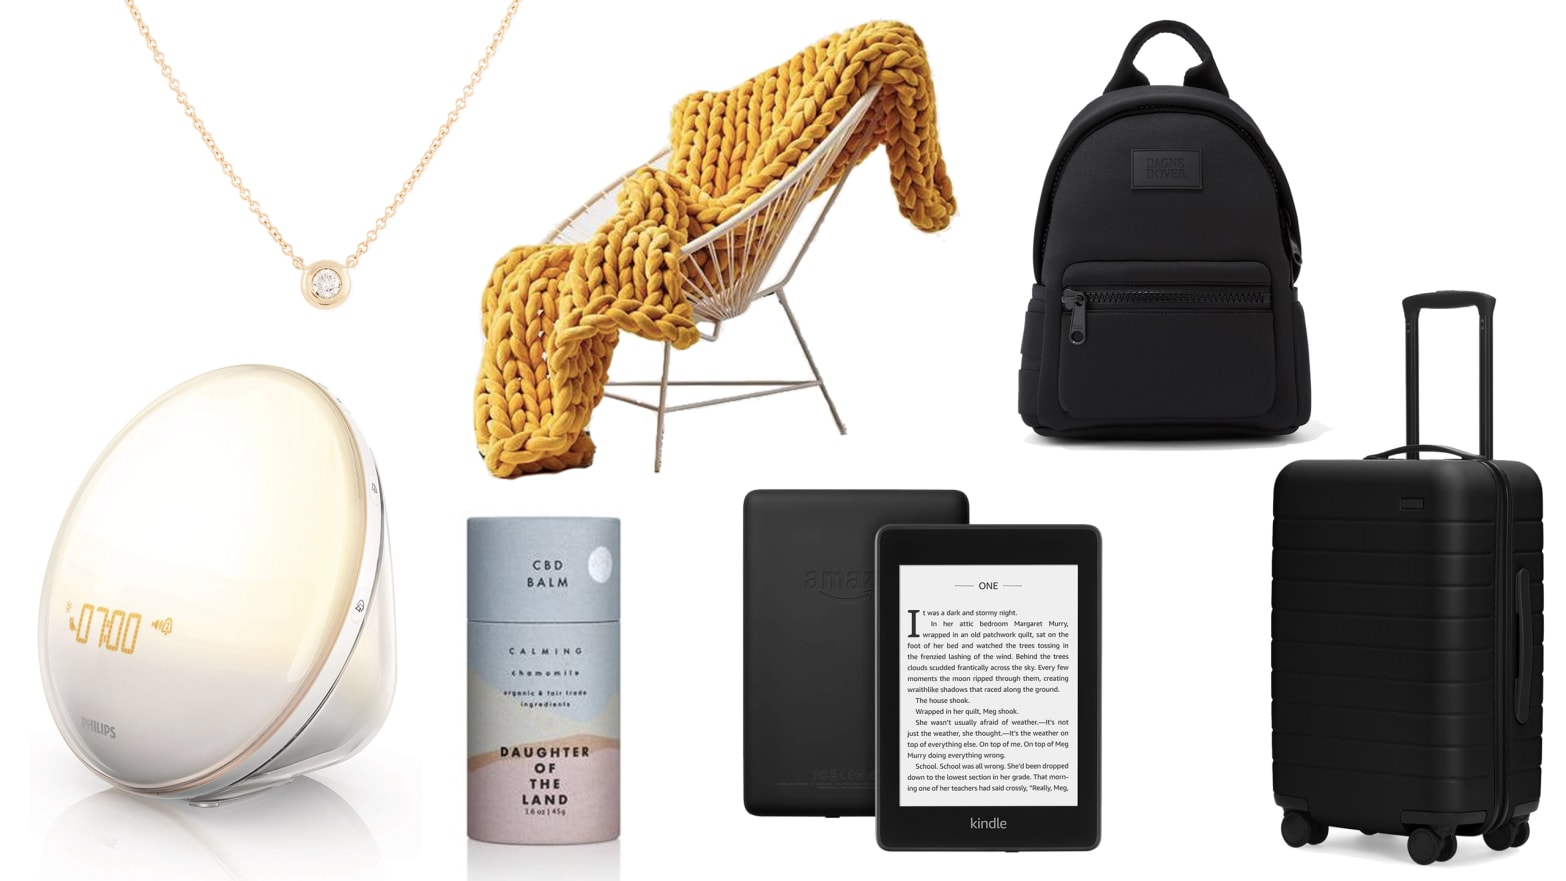 The Best Graduation Gifts For Any Kind of Grad